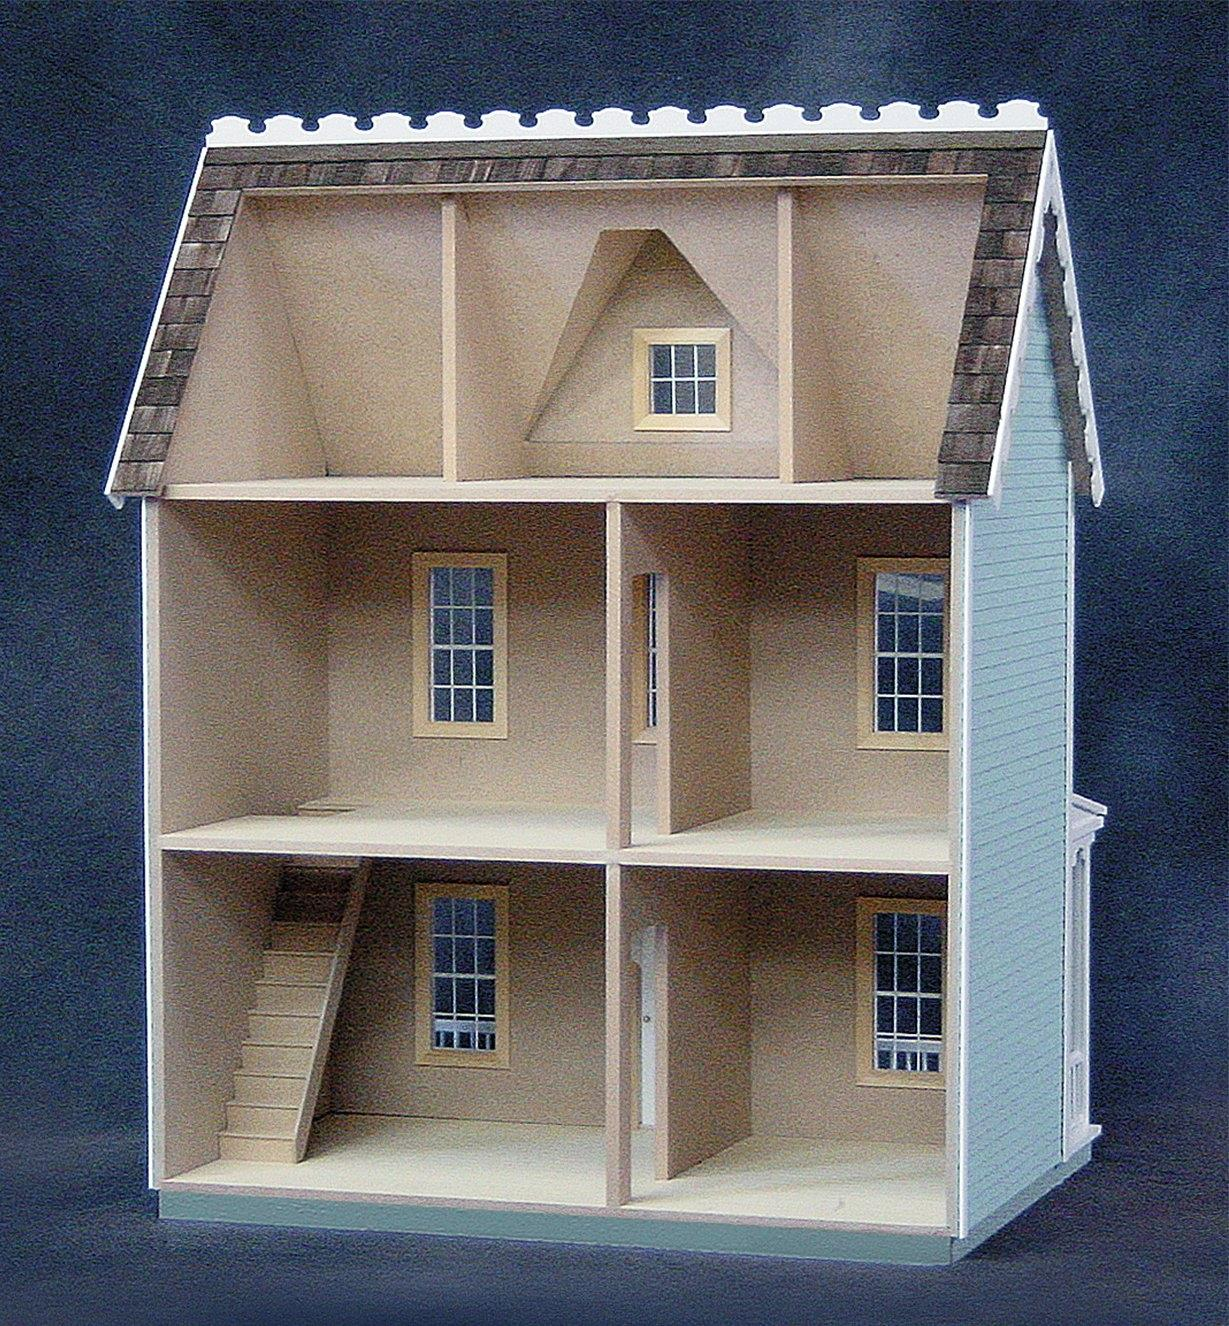 Back view of assembled dollhouse